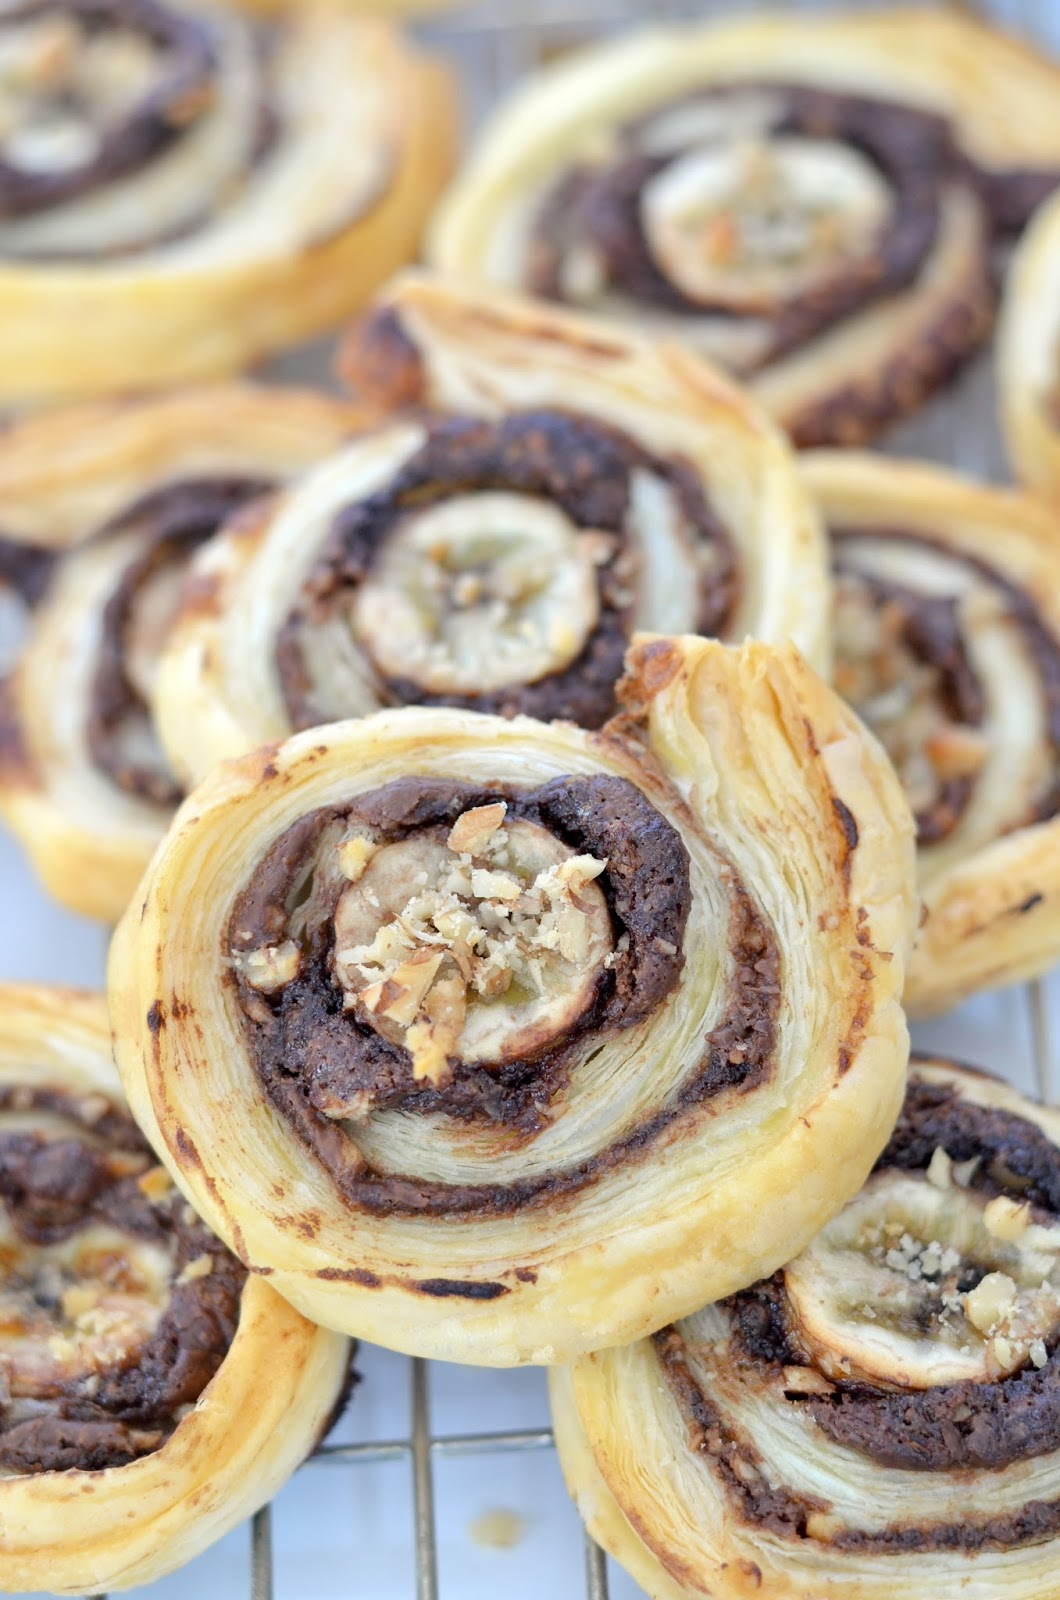 Chocolate & Banana Pinwheels